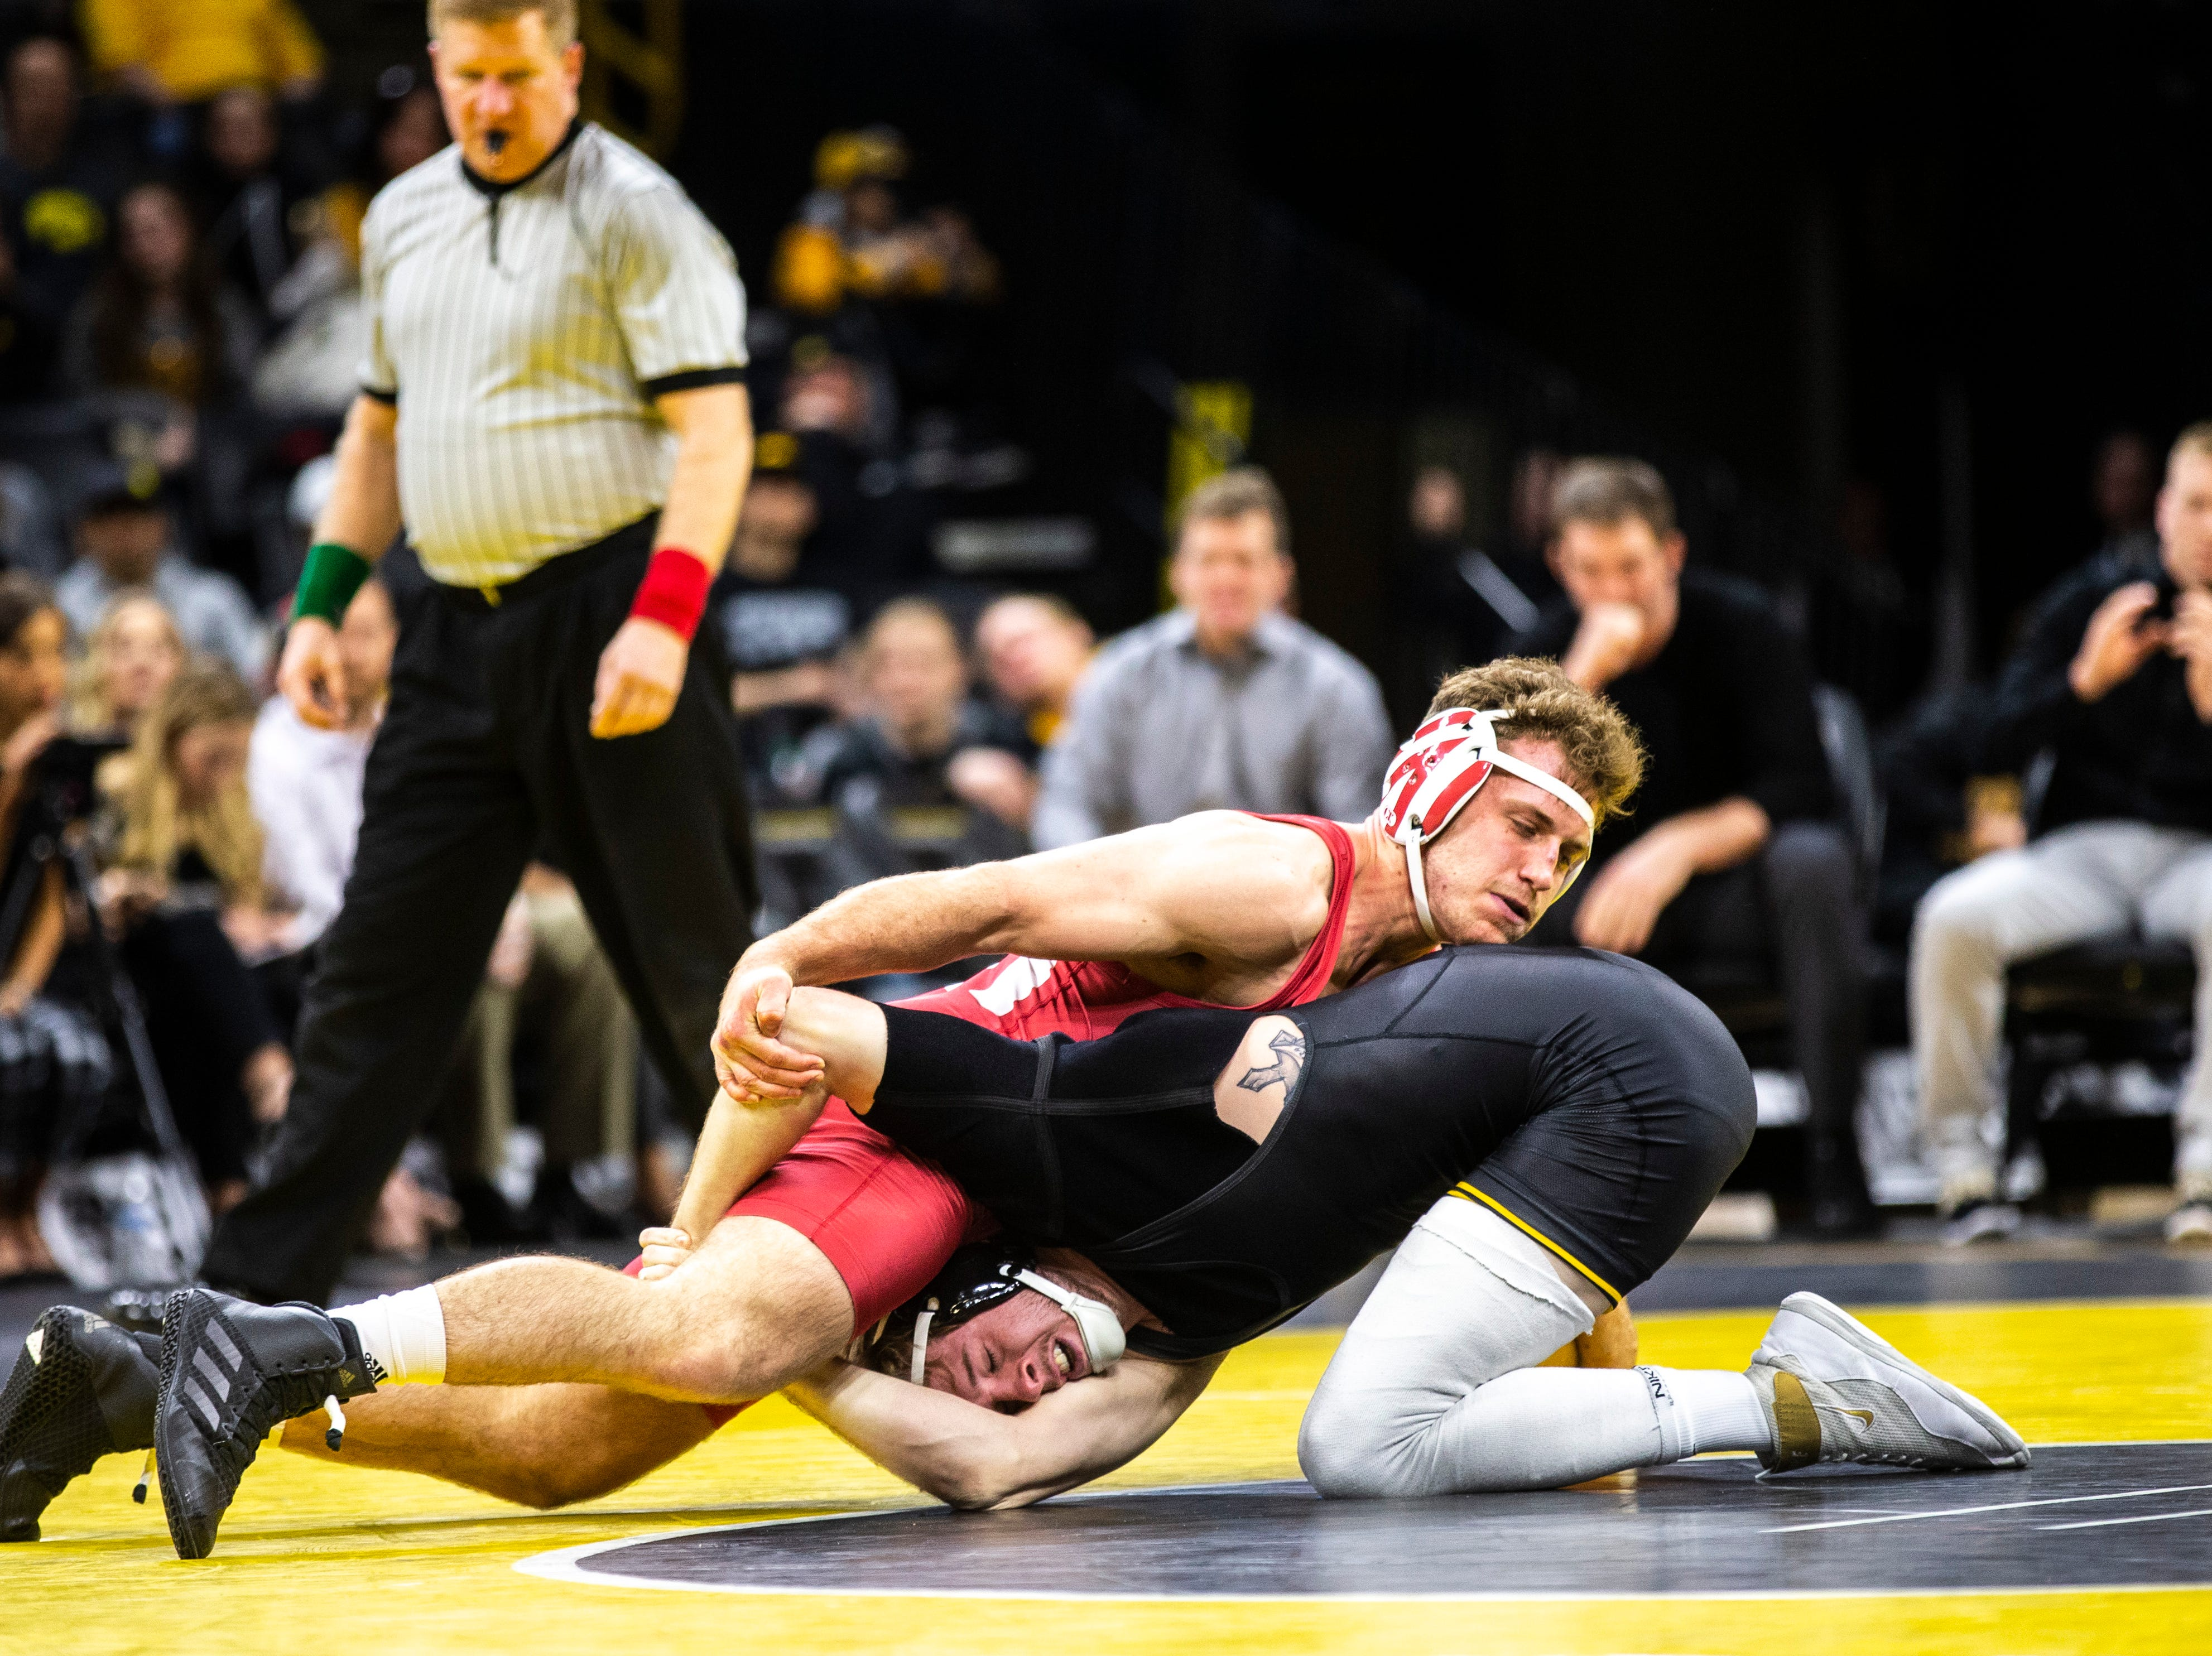 Indiana's Jacob Cavaciu, left, wrestles Iowa's Mitch Bowman at 175 during a NCAA Big Ten Conference wrestling dual on Friday, Feb. 15, 2019 at Carver-Hawkeye Arena in Iowa City, Iowa.